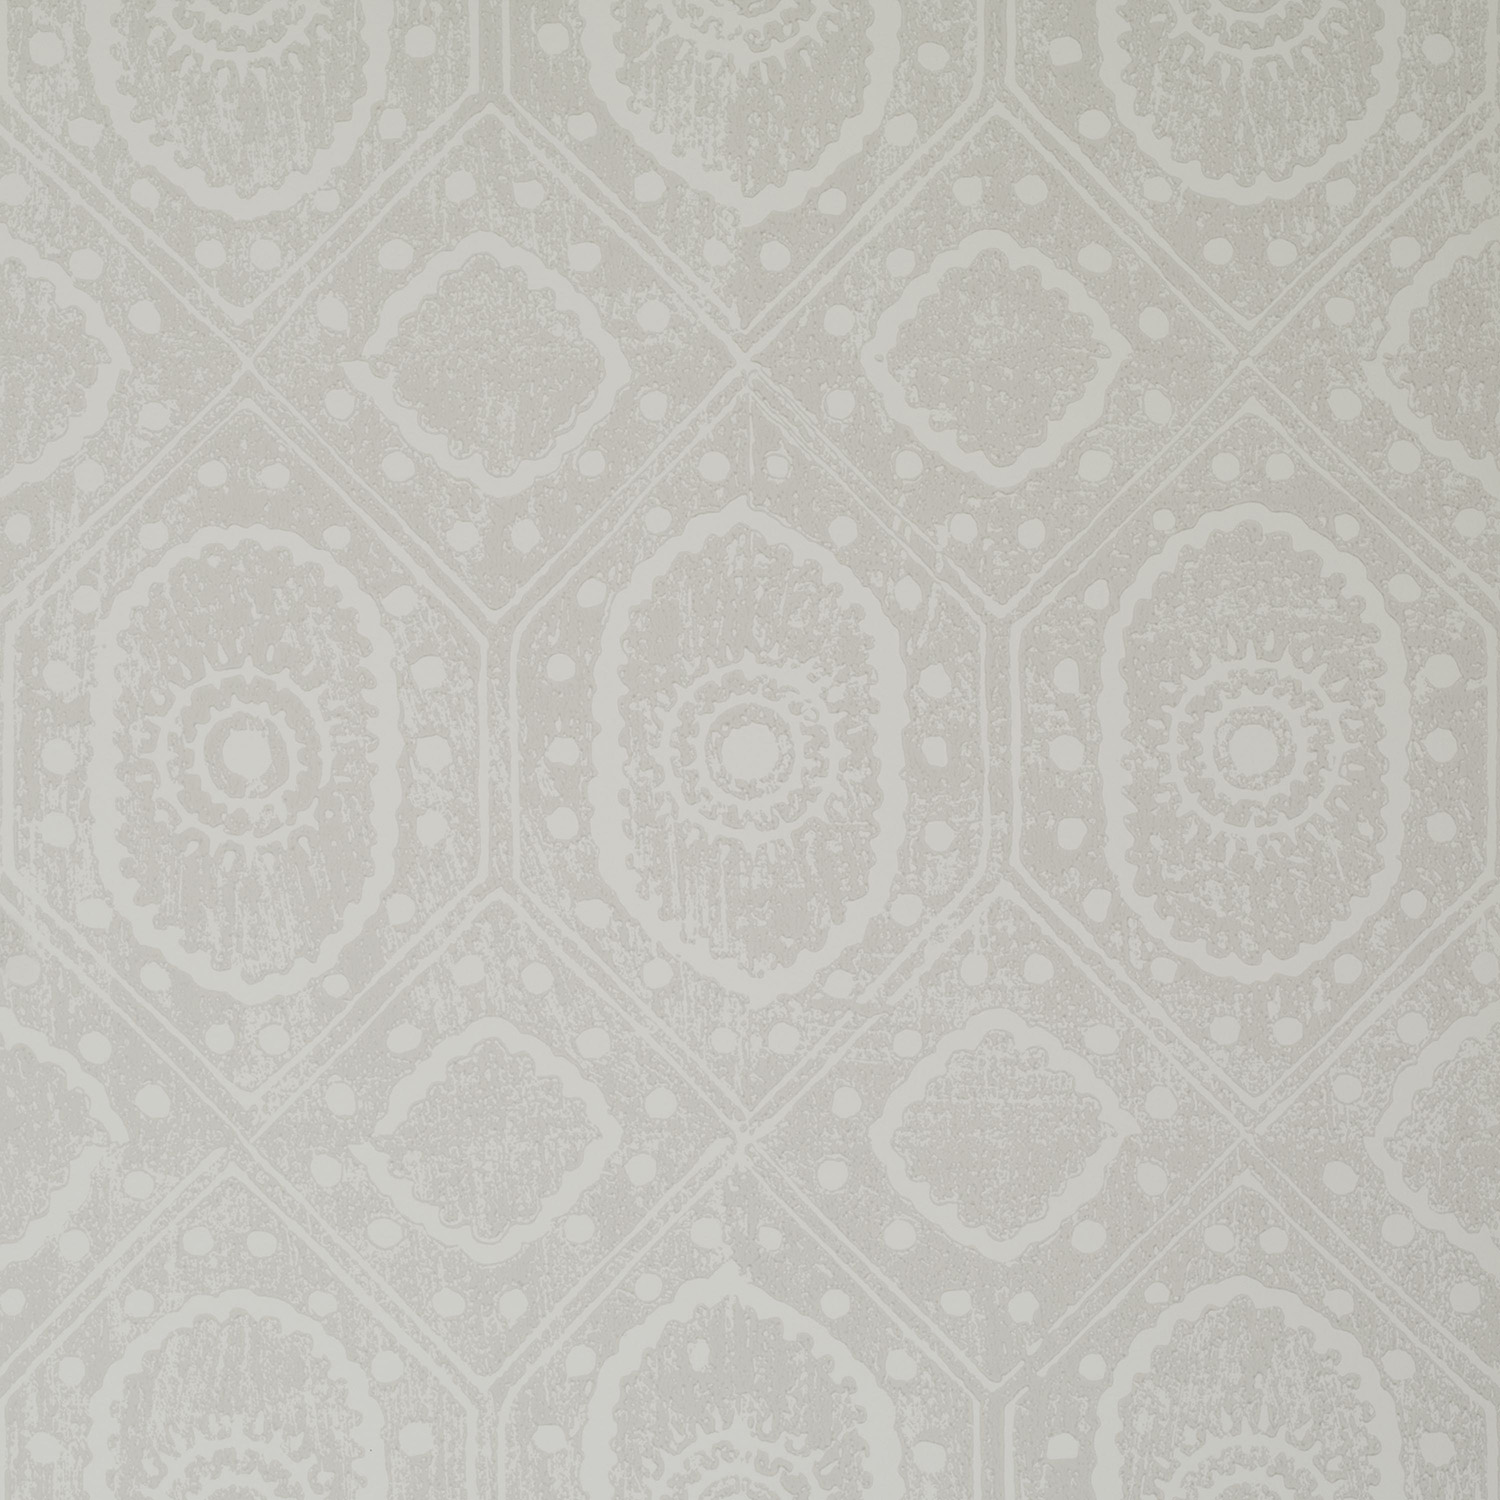 <p><strong>DIAMOND</strong>mist 900-04<a href=/the-peggy-angus-collection/diamond-mist-900-04>More →</a></p>